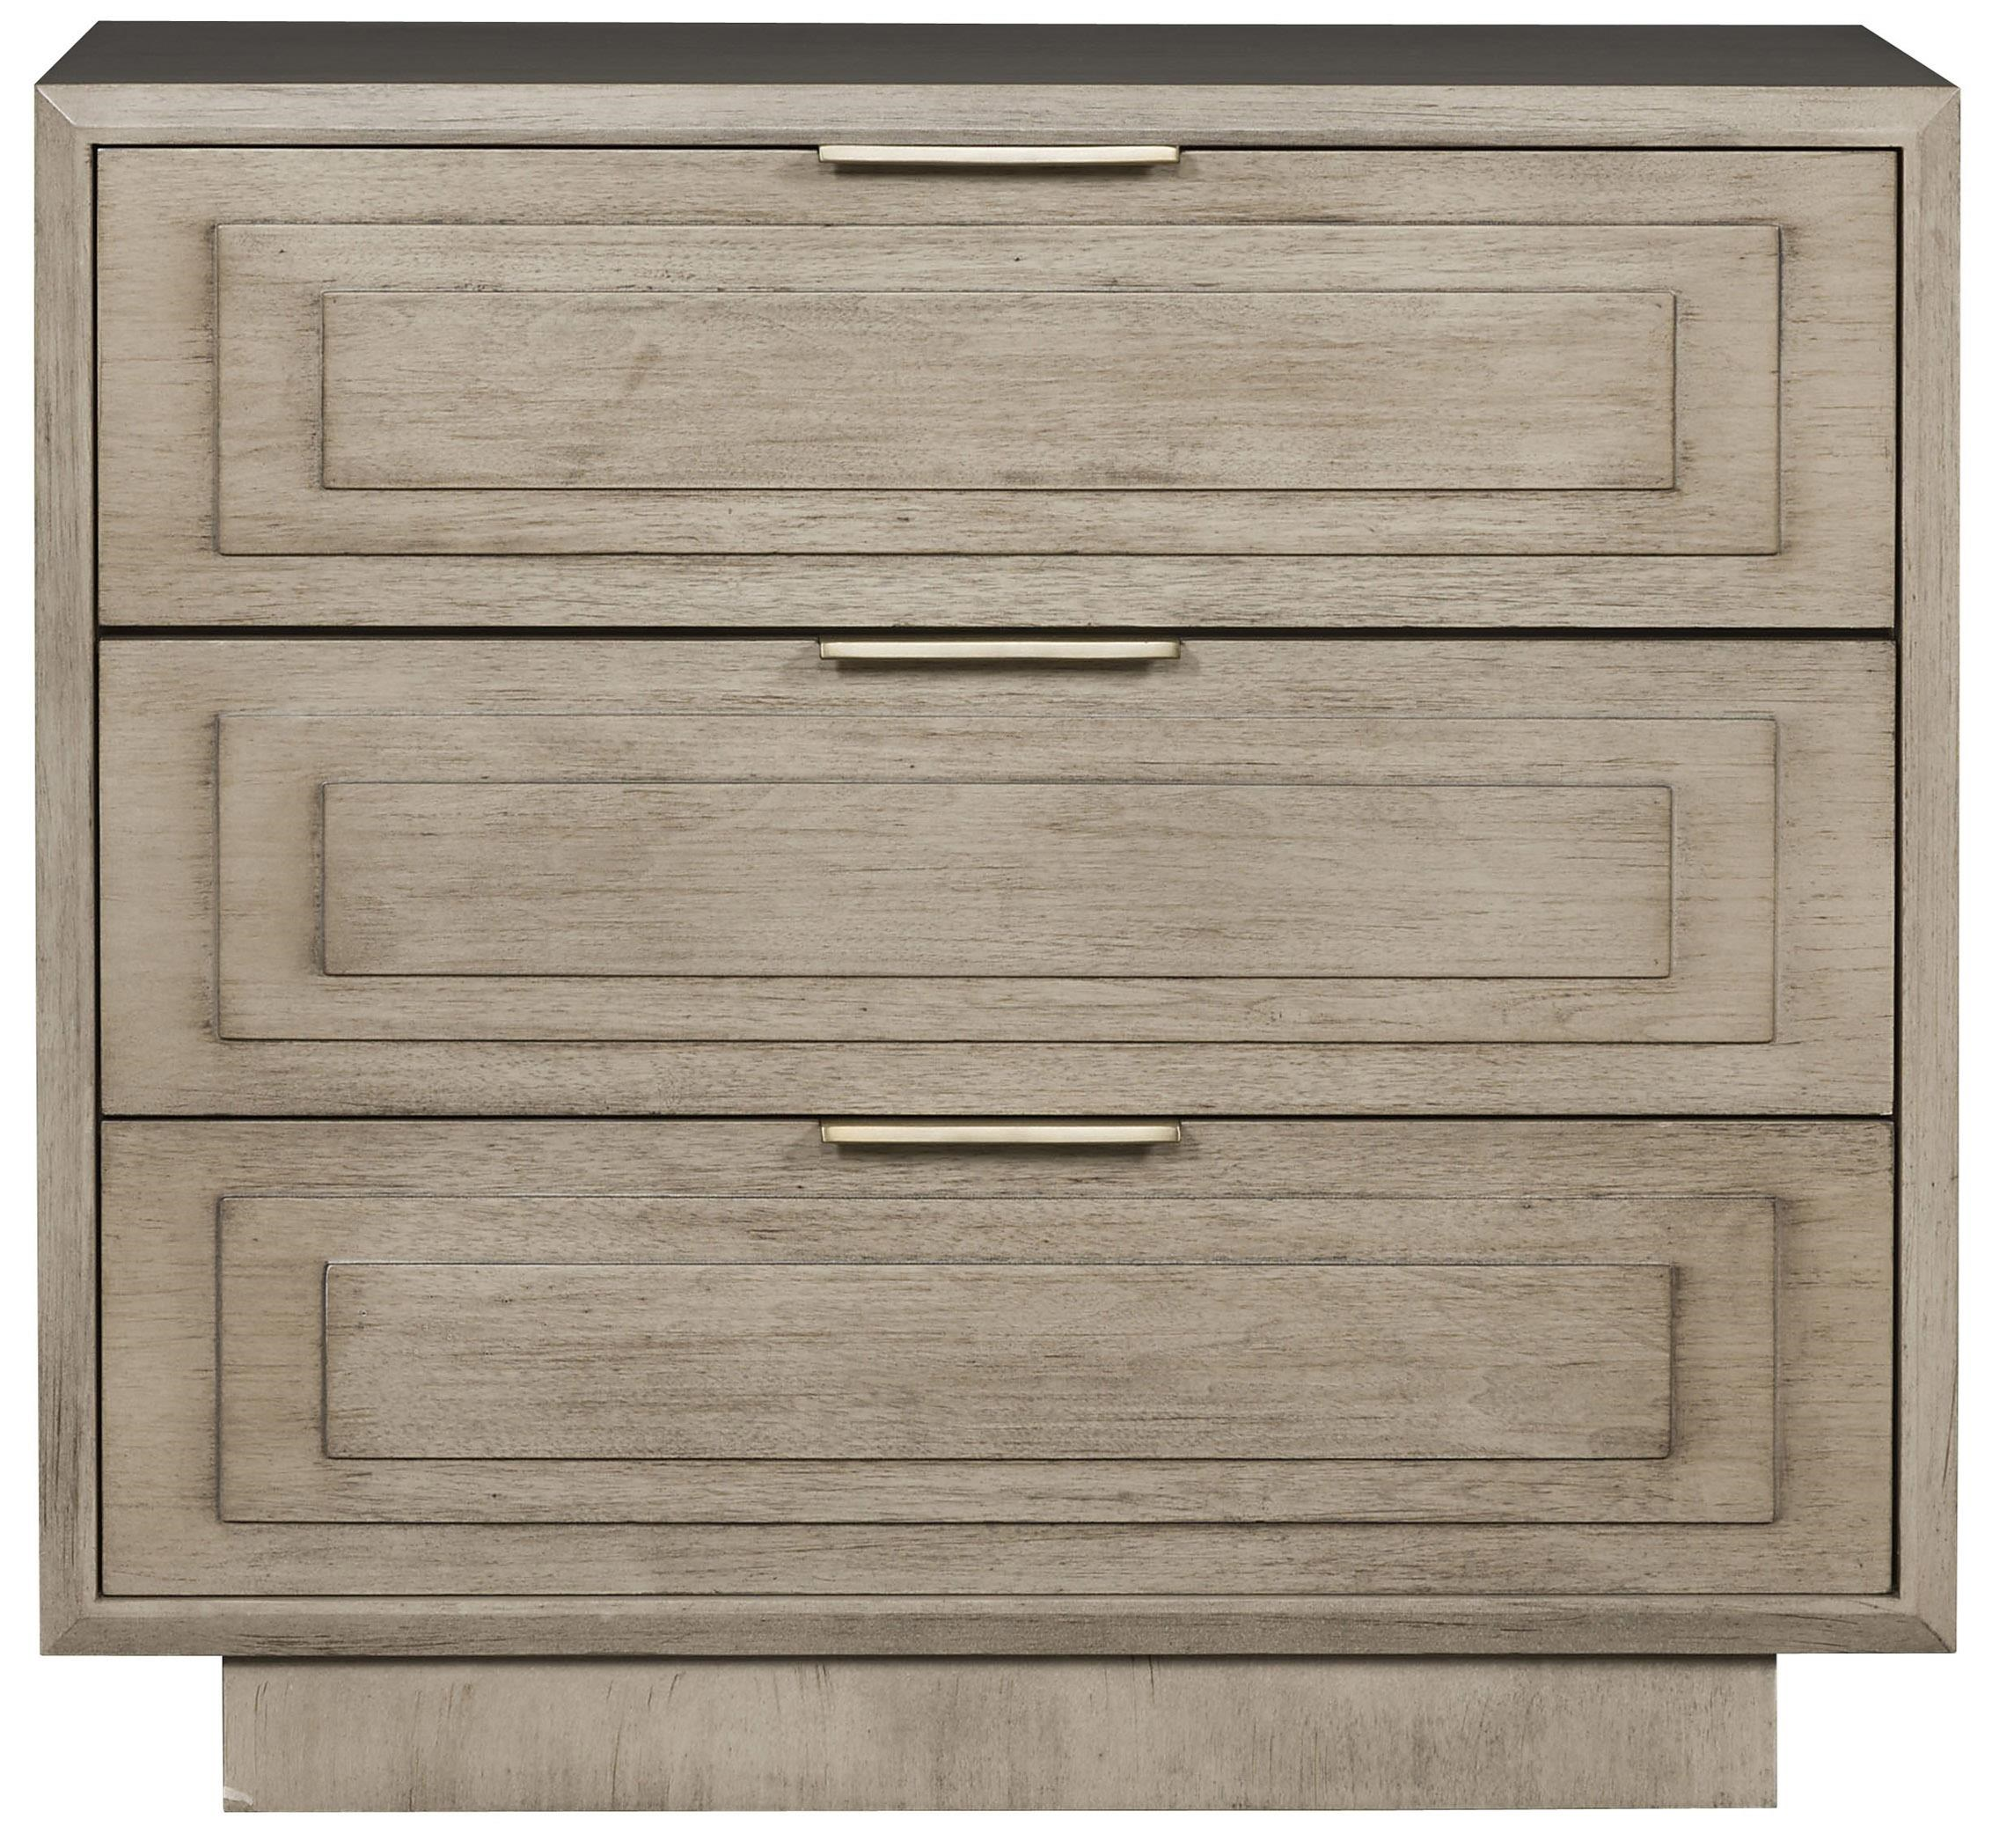 Bowers - Michael Weiss 3-Drawer Nightstand by Vanguard Furniture at Baer's Furniture